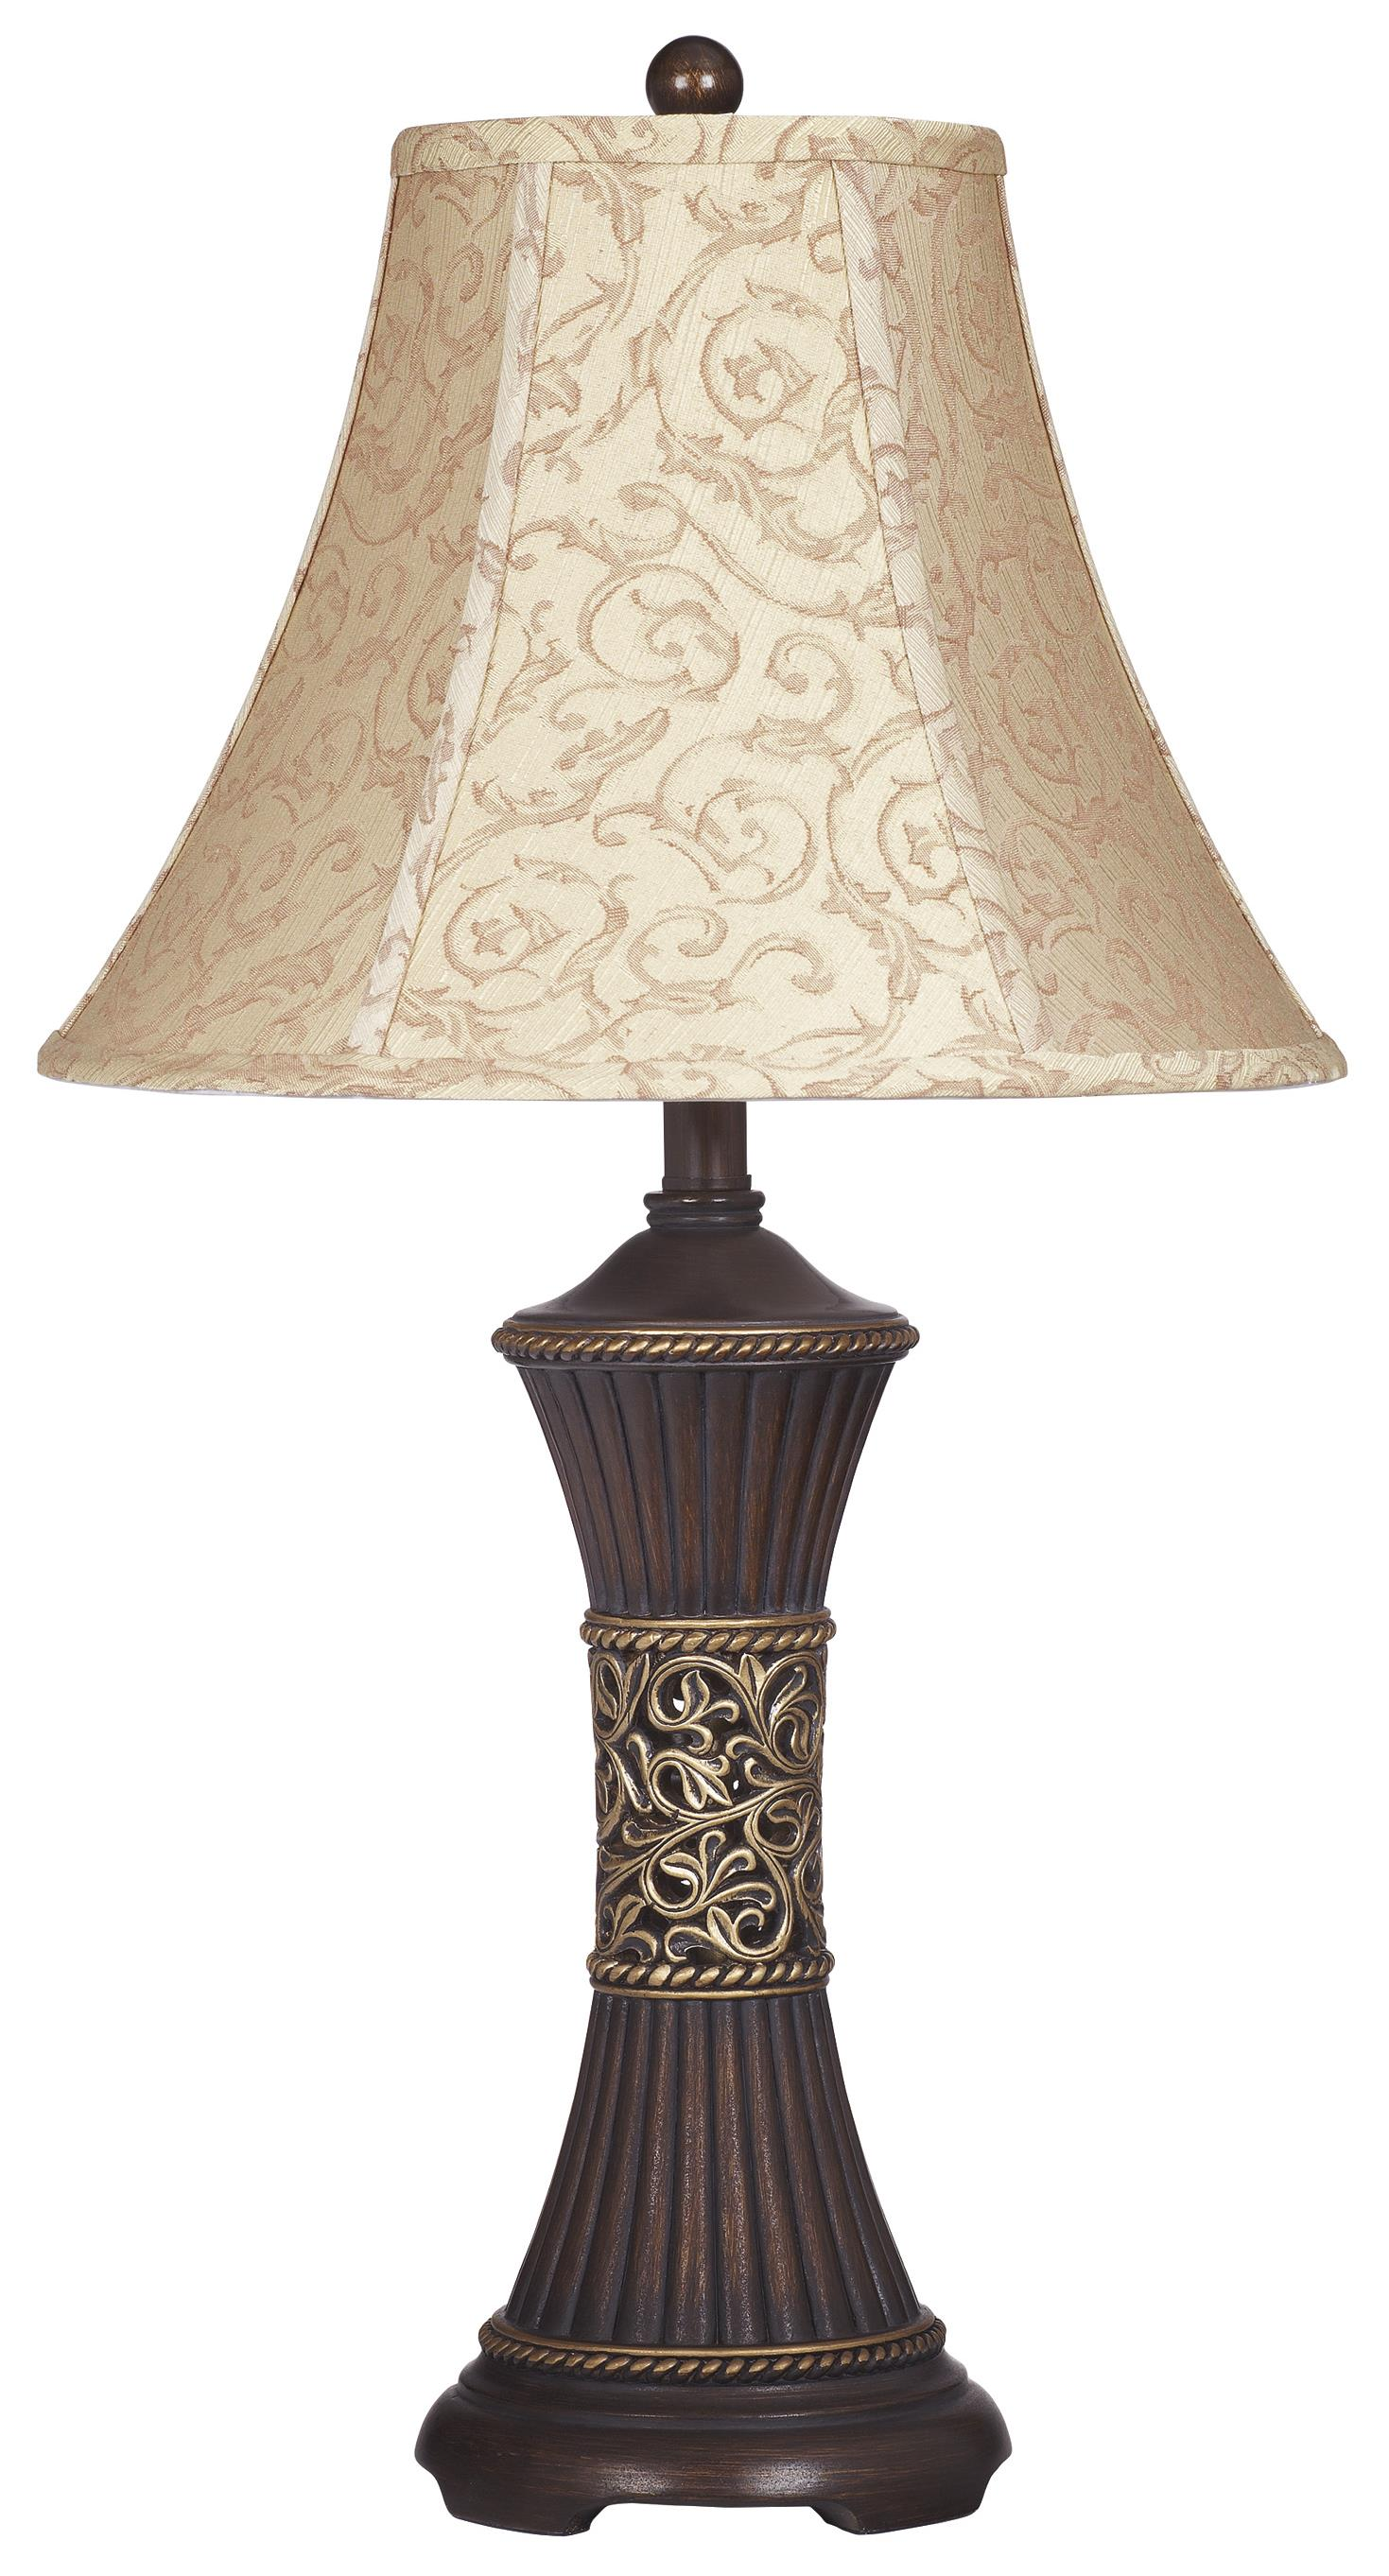 Set of 2 Mariana Table Lamps